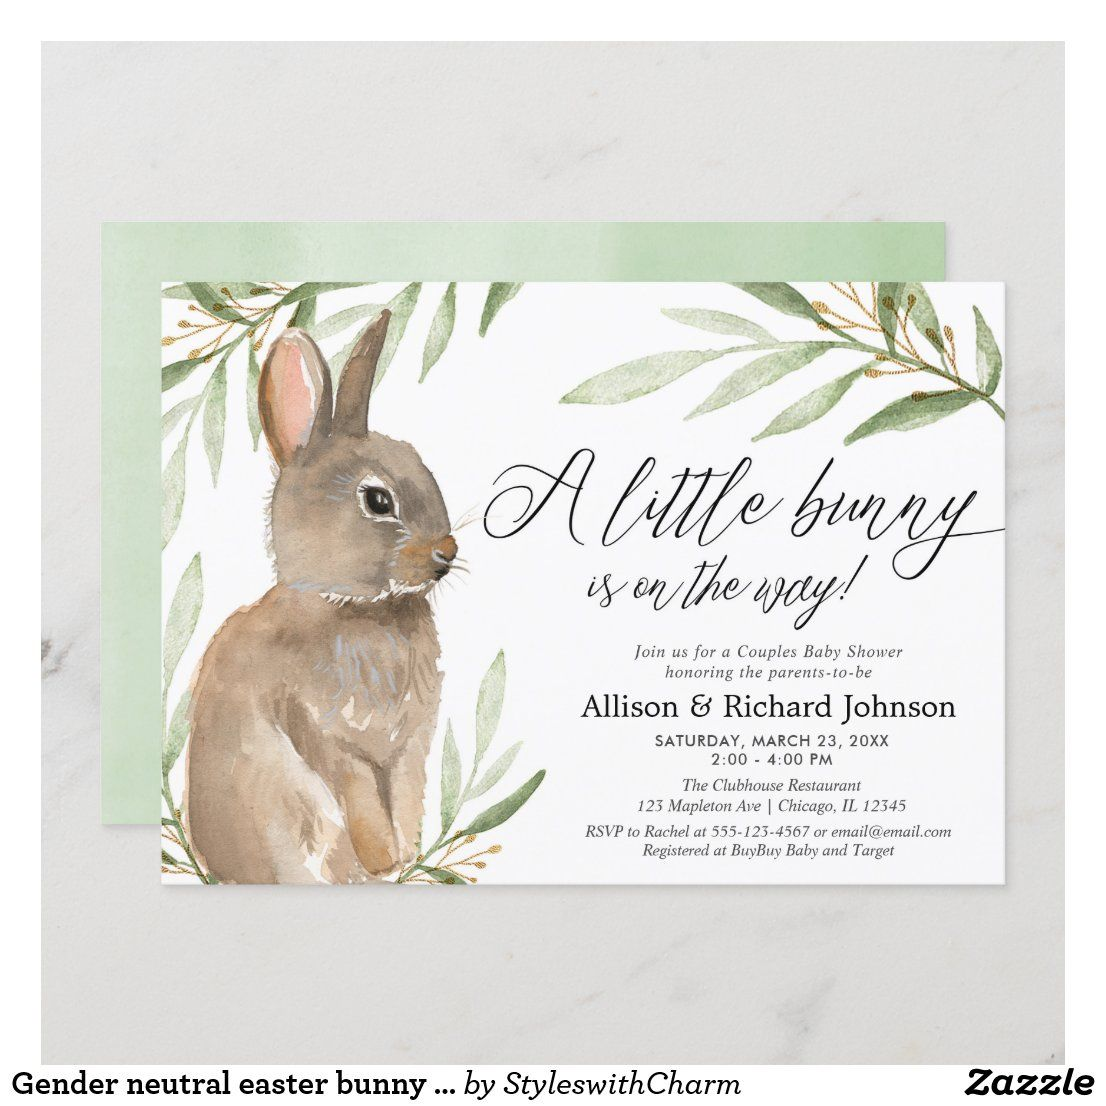 Gender Neutral Easter Bunny Couples Baby Shower Invitation Zazzle Com In 2021 Couples Baby Shower Invitations Bunny Baby Shower Easter Baby Shower